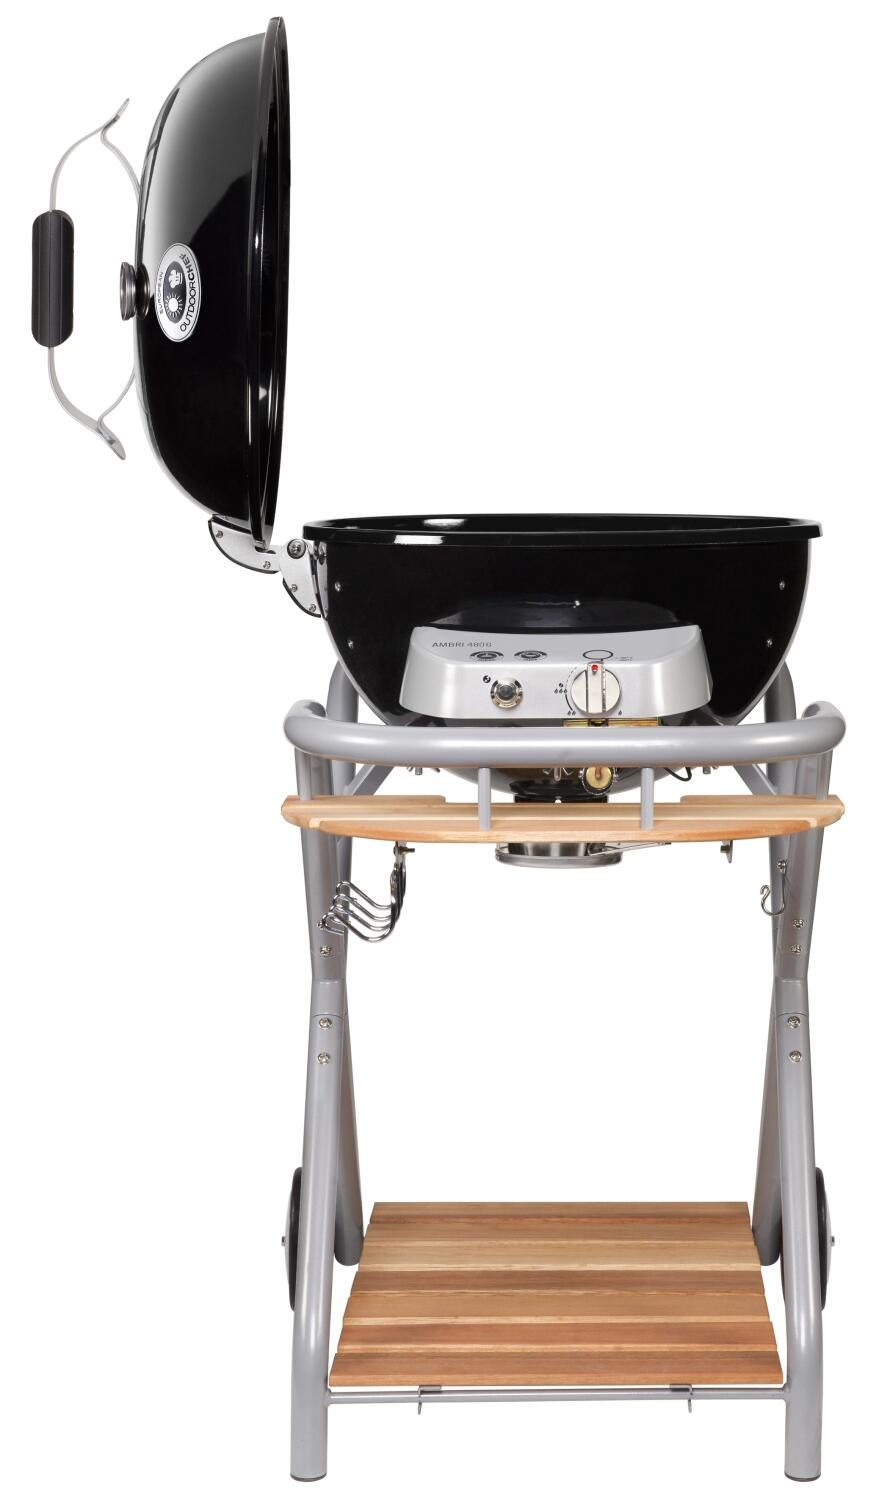 Outdoorchef Gaskugelgrill Ambri 480 G